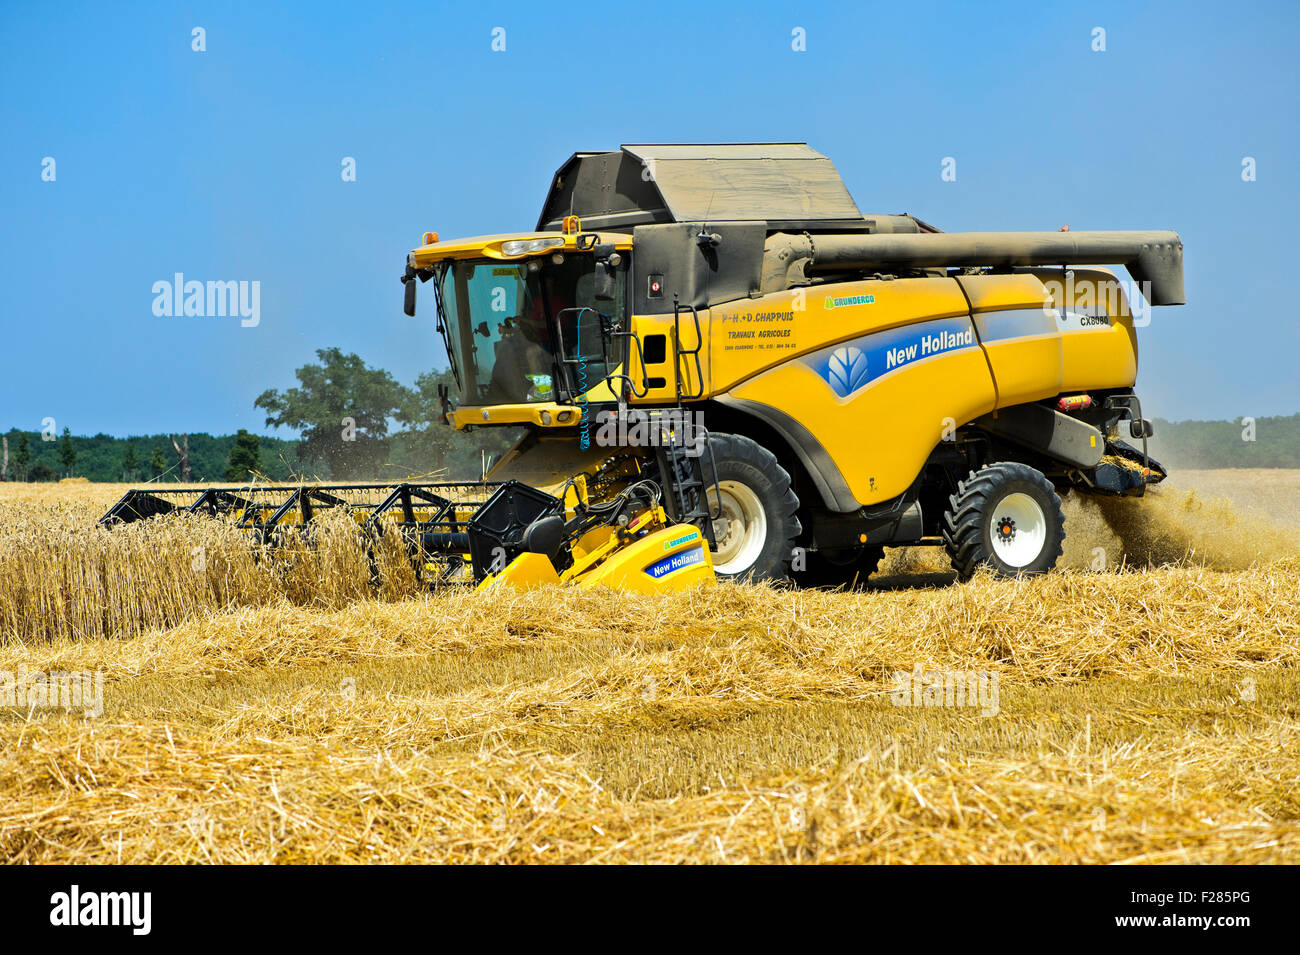 Combine Harvester New Holland CX8080 harvesting winter wheat, Canton Geneva, Switzerland - Stock Image